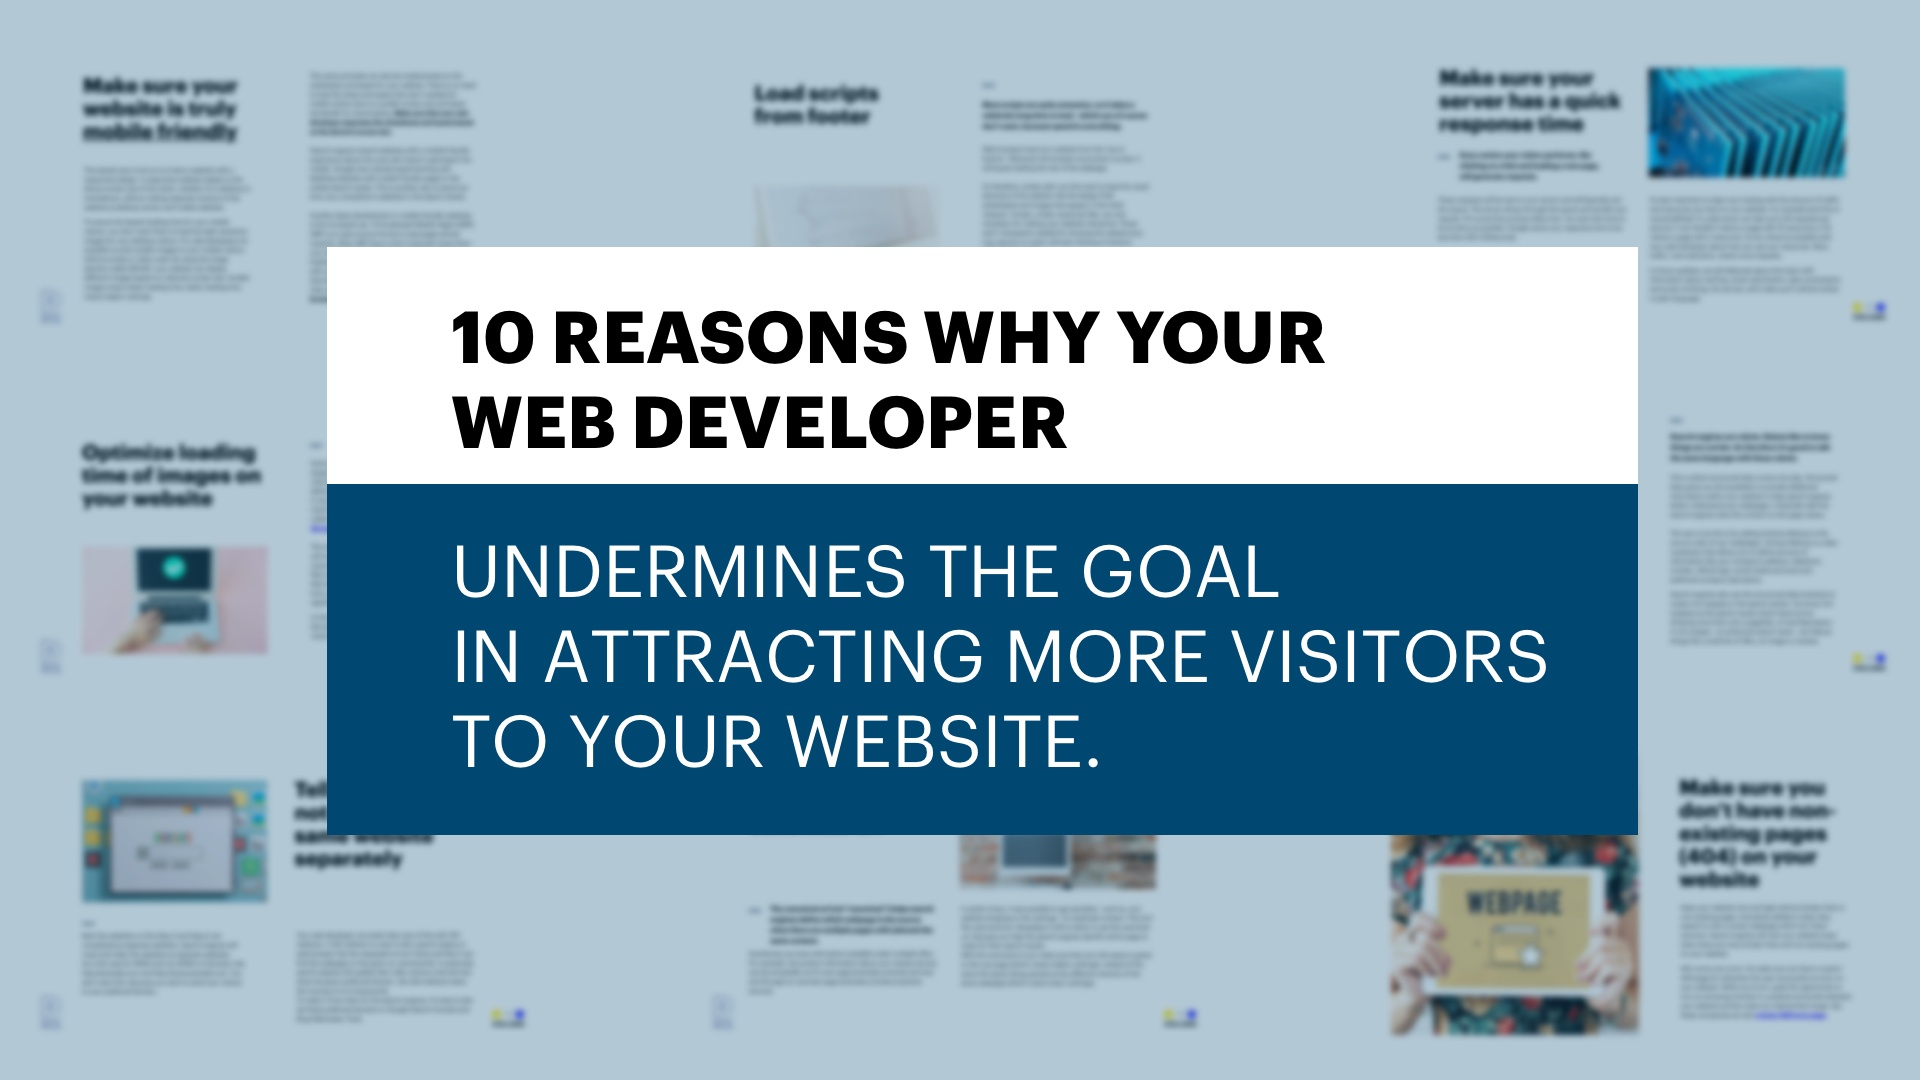 Tip Sheet for attracting more visitors to your website